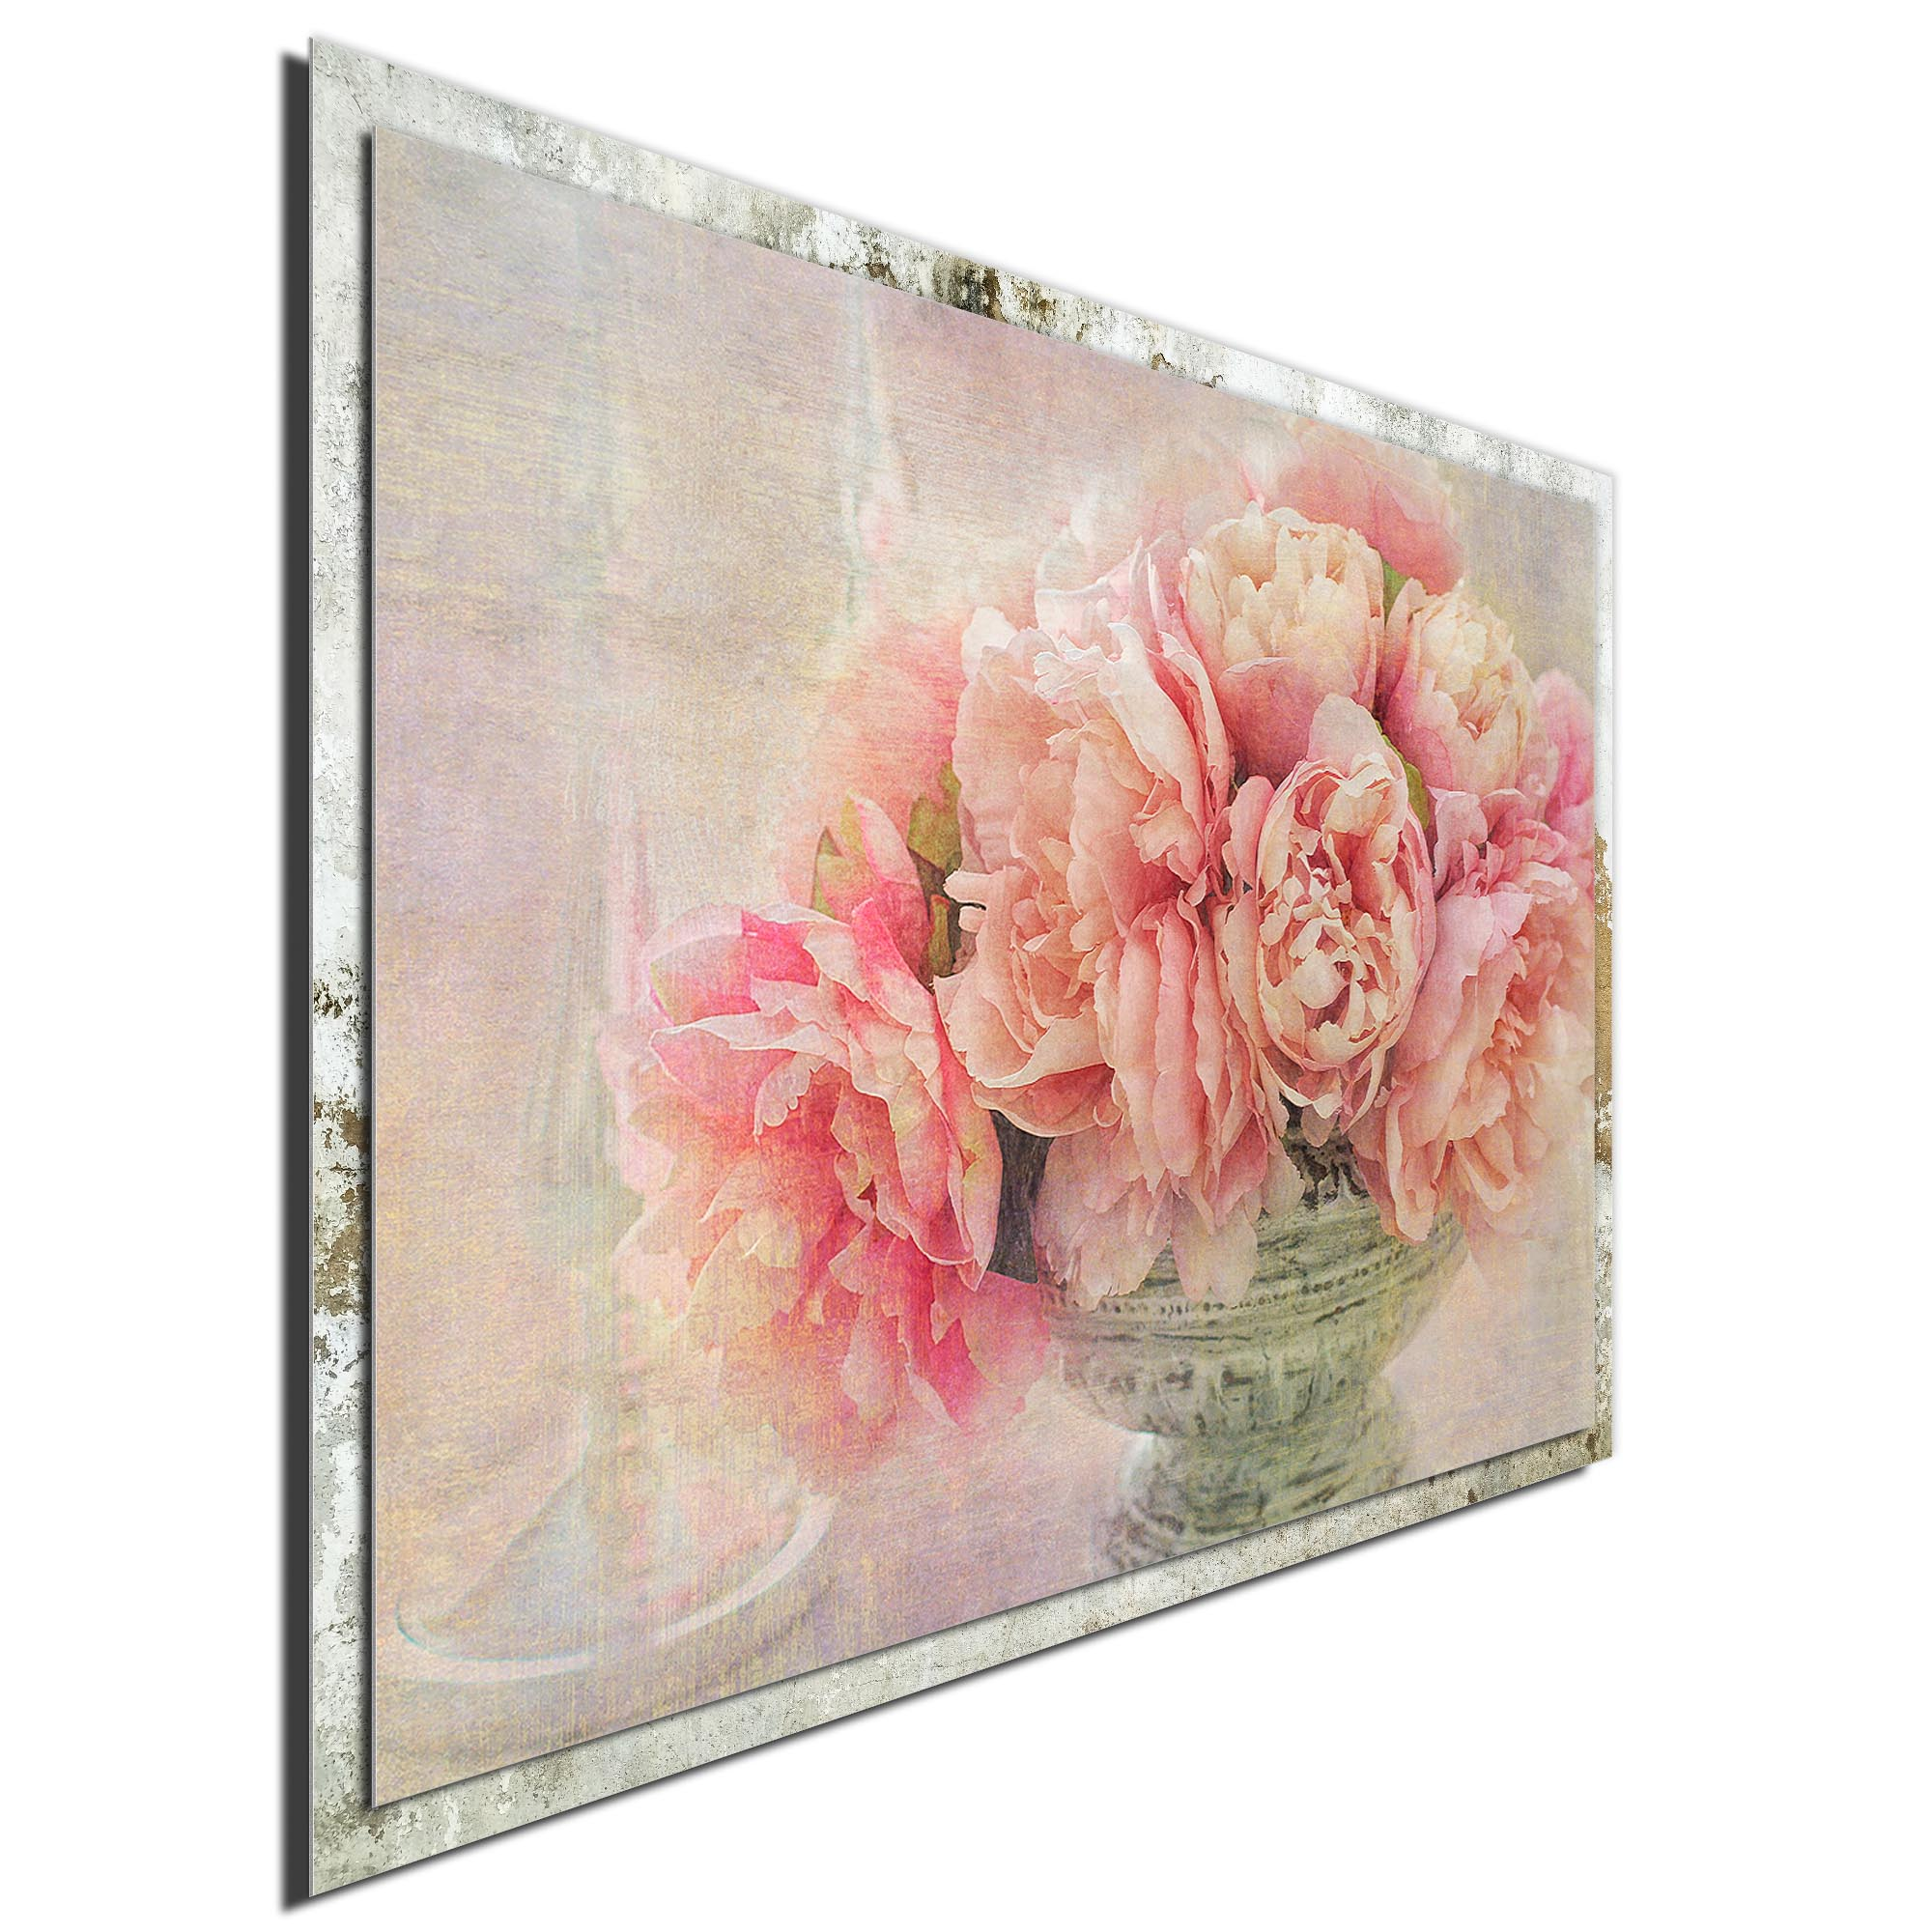 A Posy of Pink Peonies by Gaille Gray - Modern Farmhouse Floral on Metal - Image 2